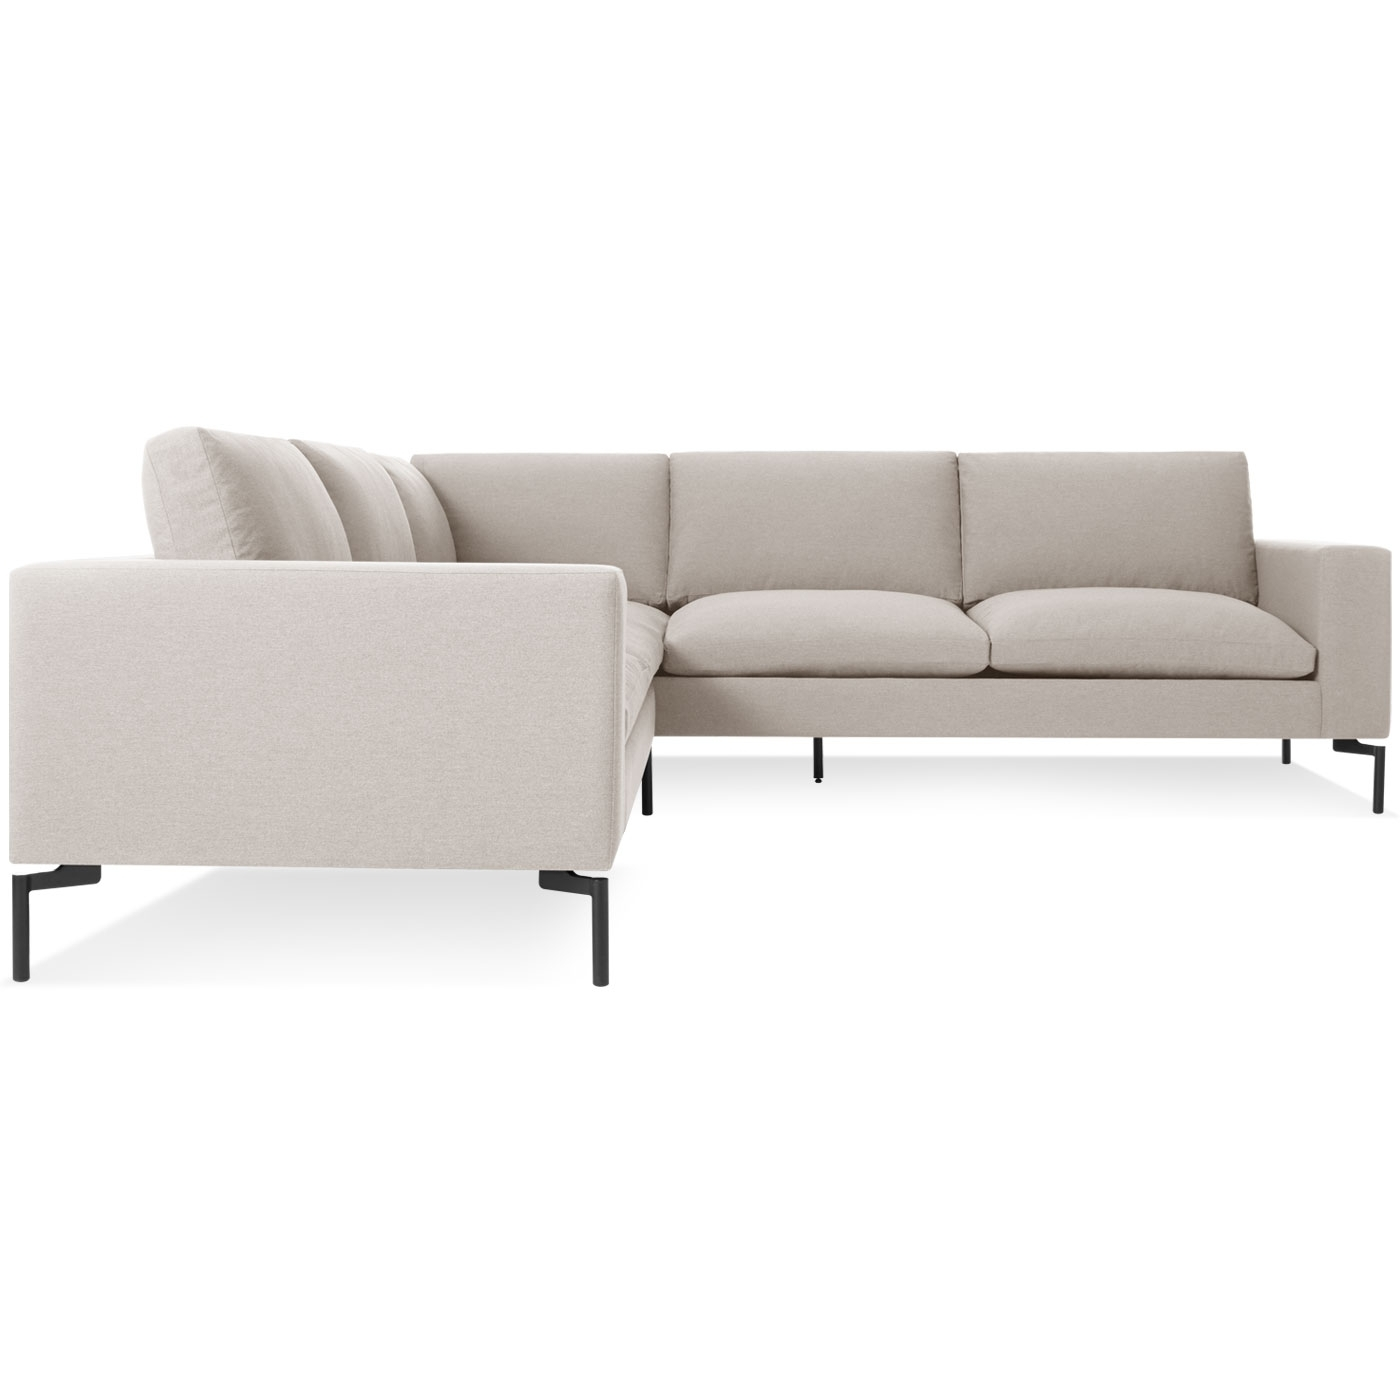 Widely Used New Standard Small Sectional Sofa – Modern Sofas (View 6 of 15)